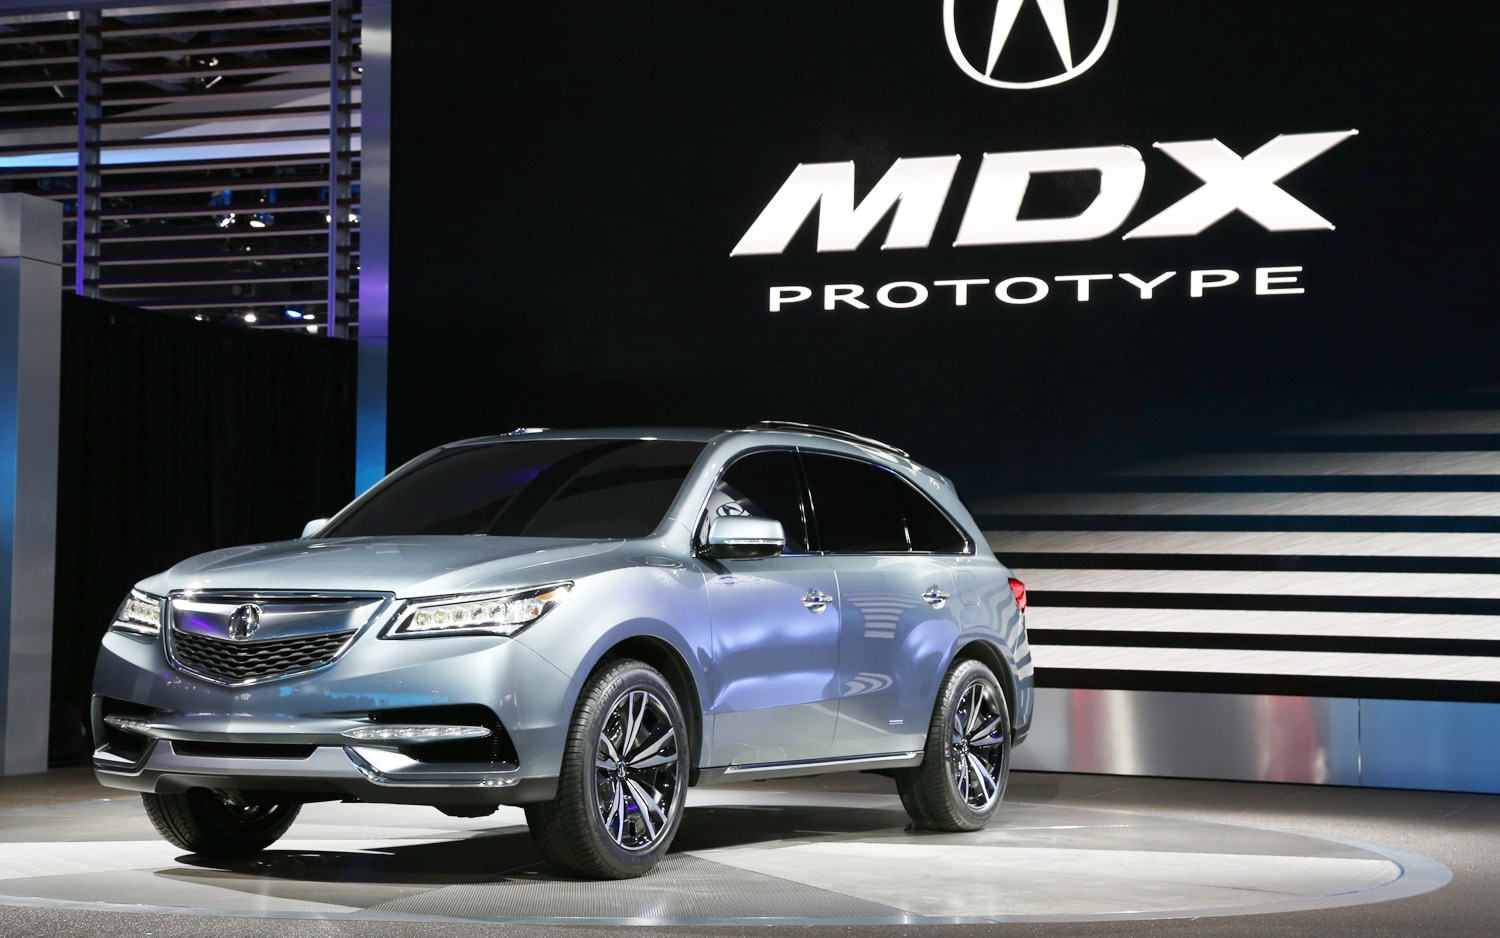 2014 Acura MDX Prototype Front Three Quarters1